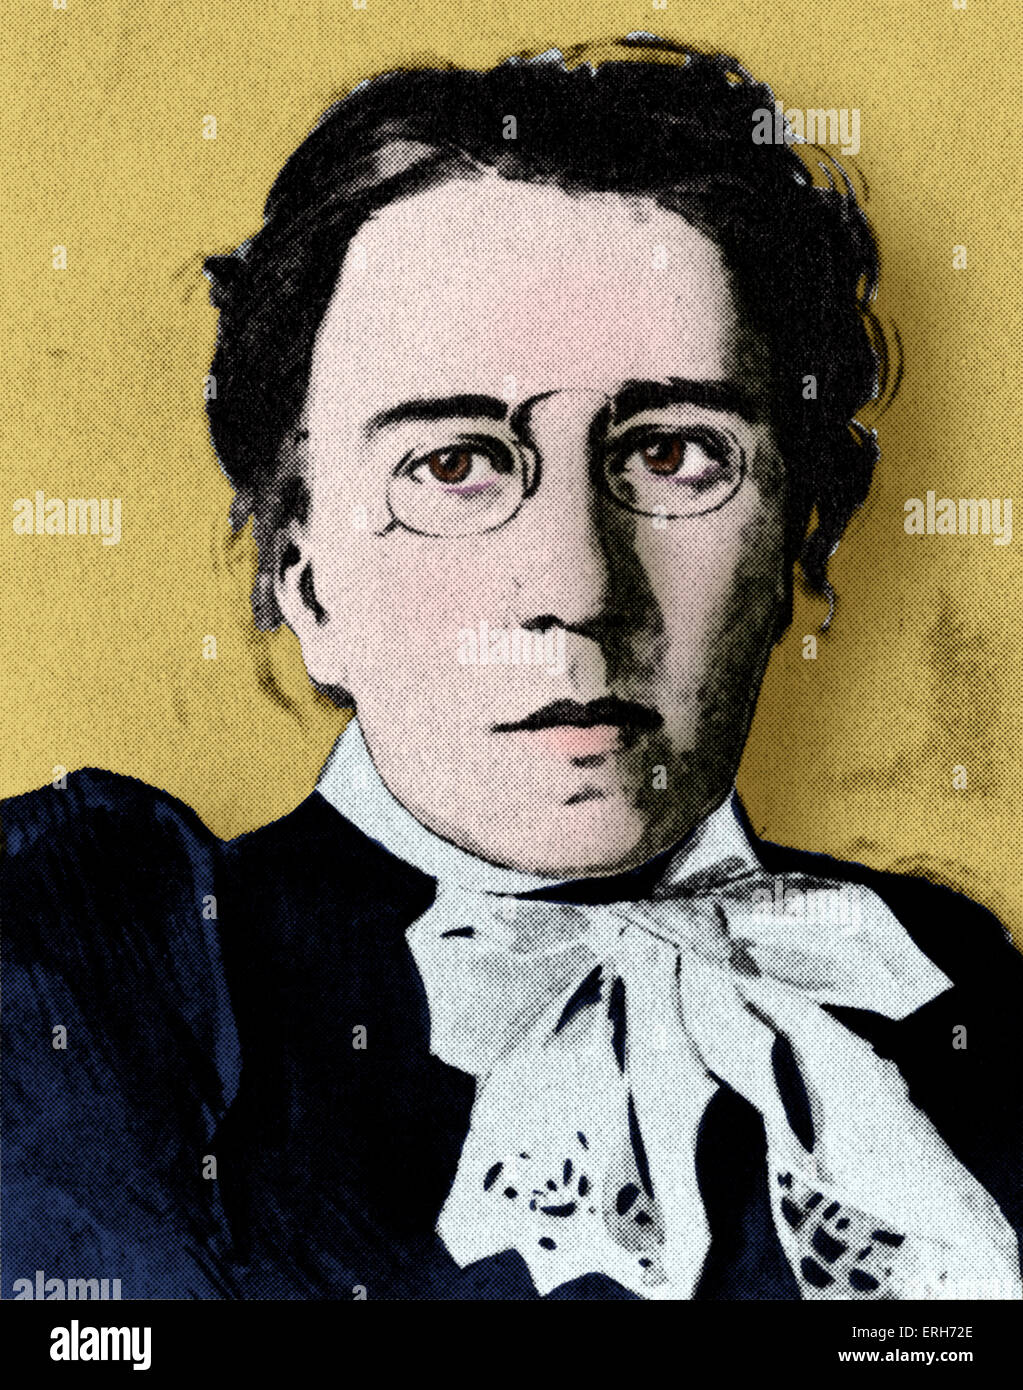 Emma Goldman c. 1911, American political activist and anarchist. 27 June 1869 – 14 May 1940. - Stock Image